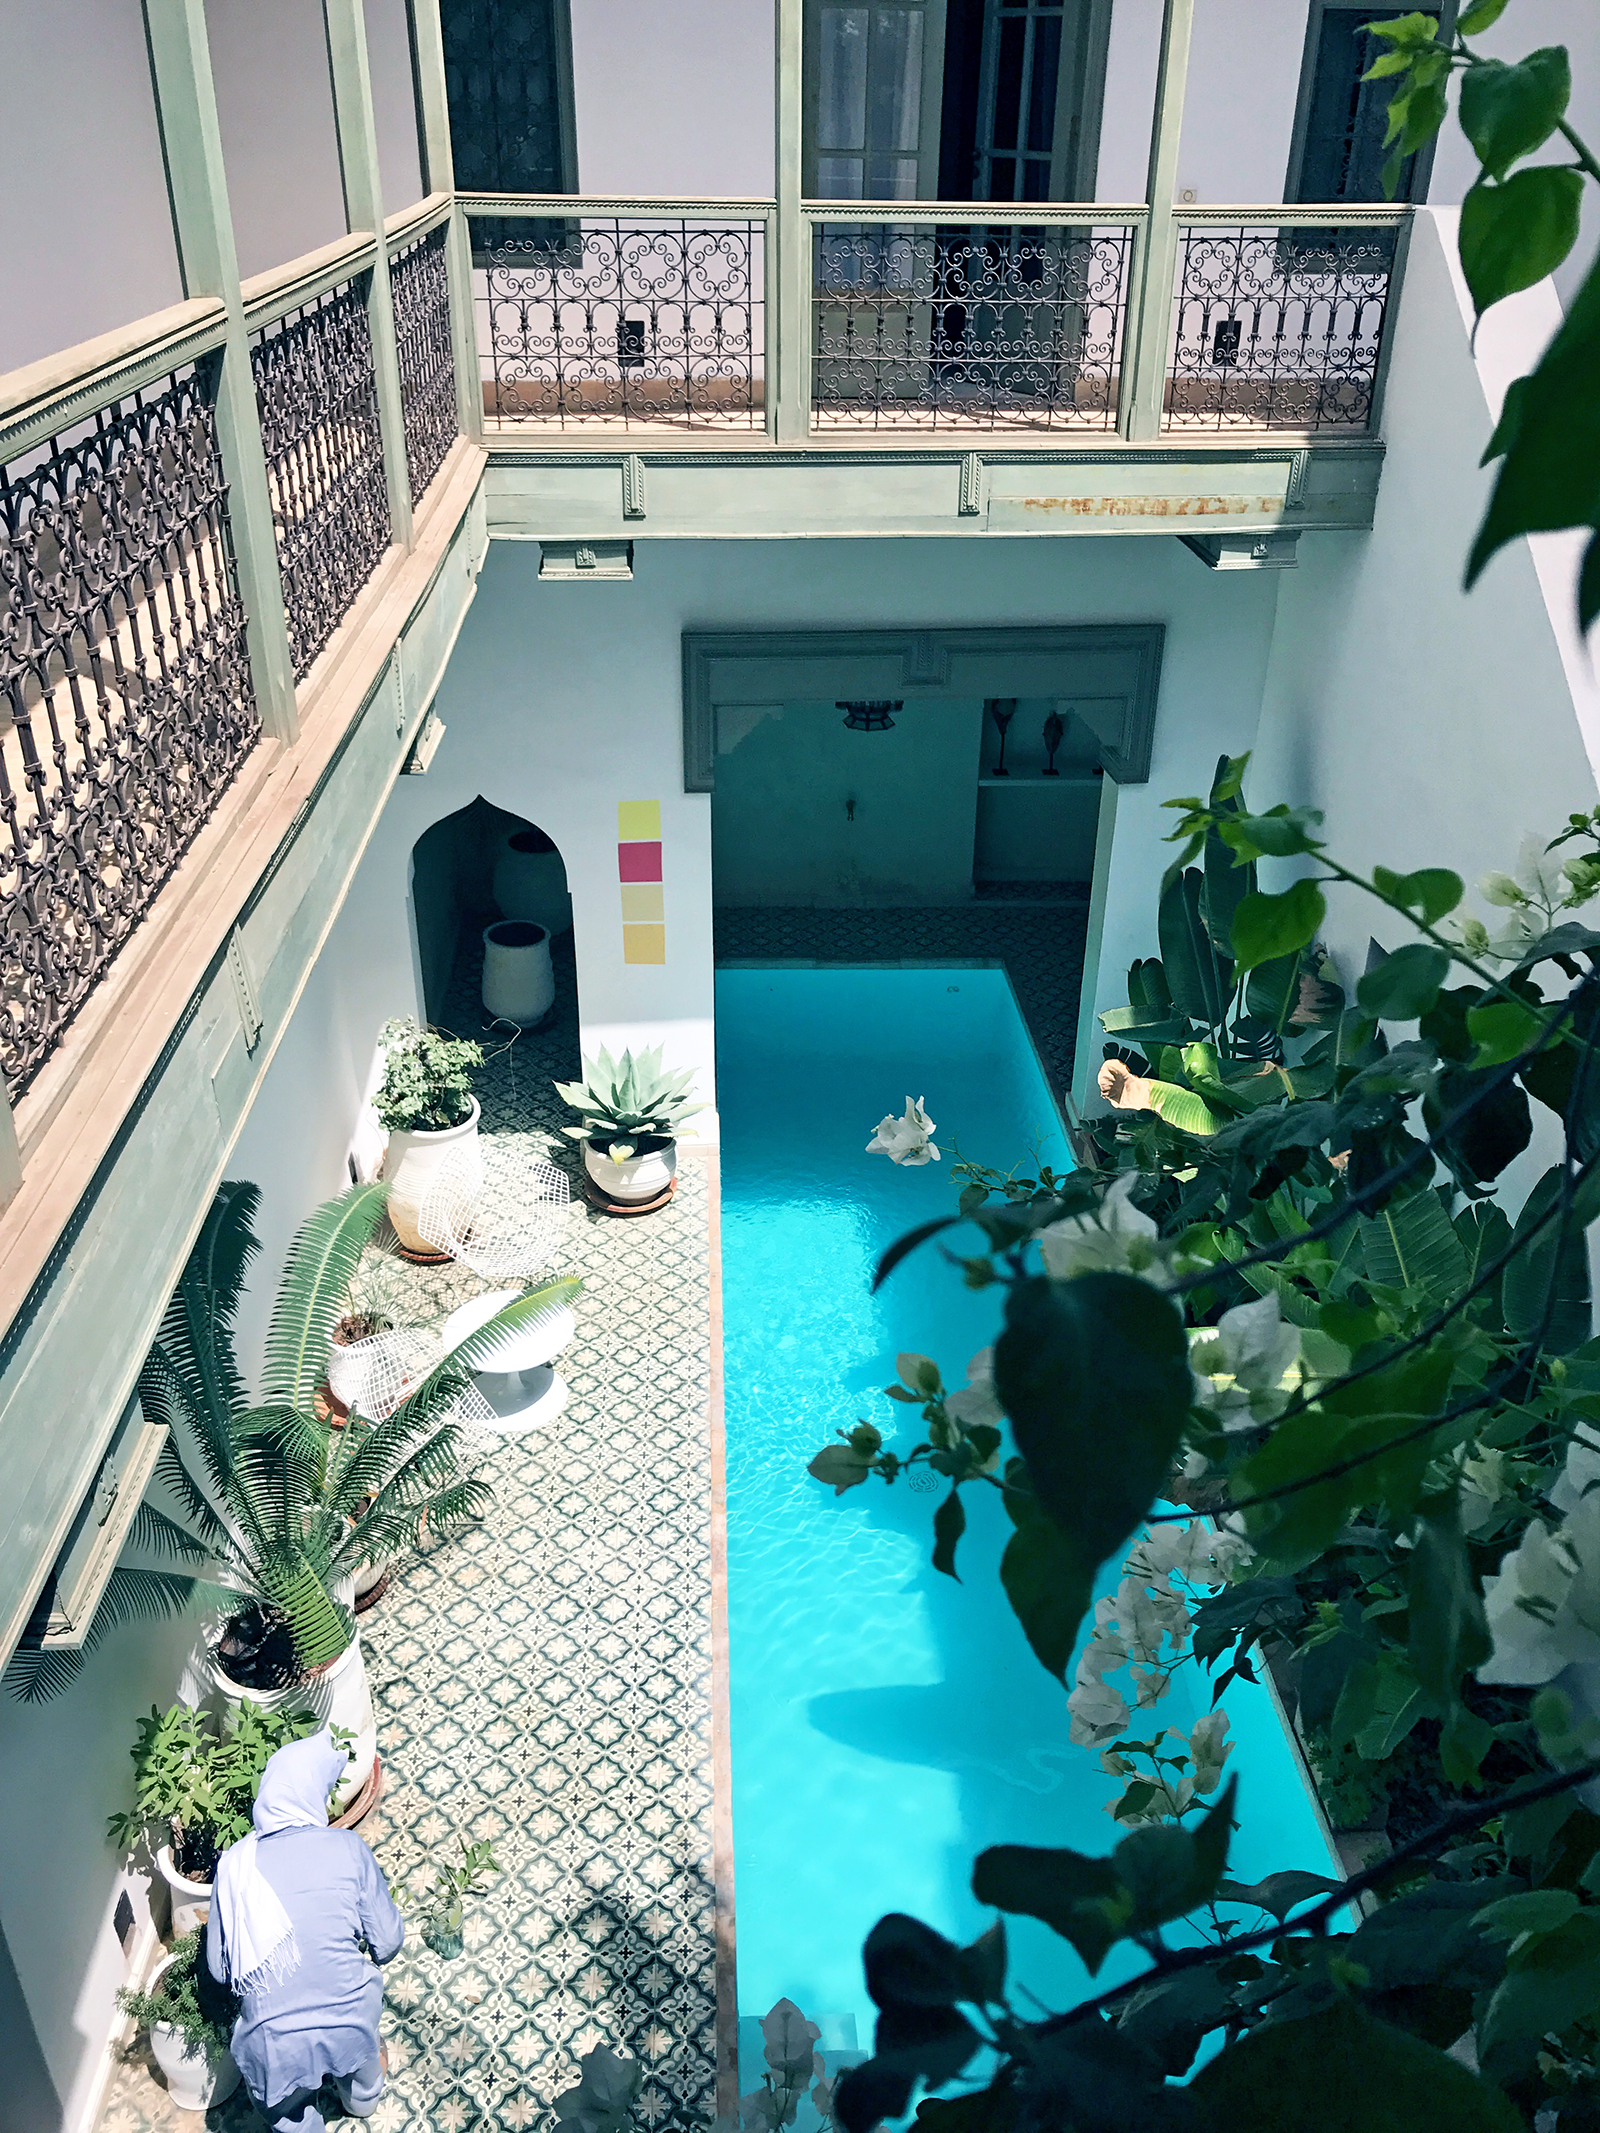 Marrakesh Morocco Riad Mena pool | Photos of Morocco